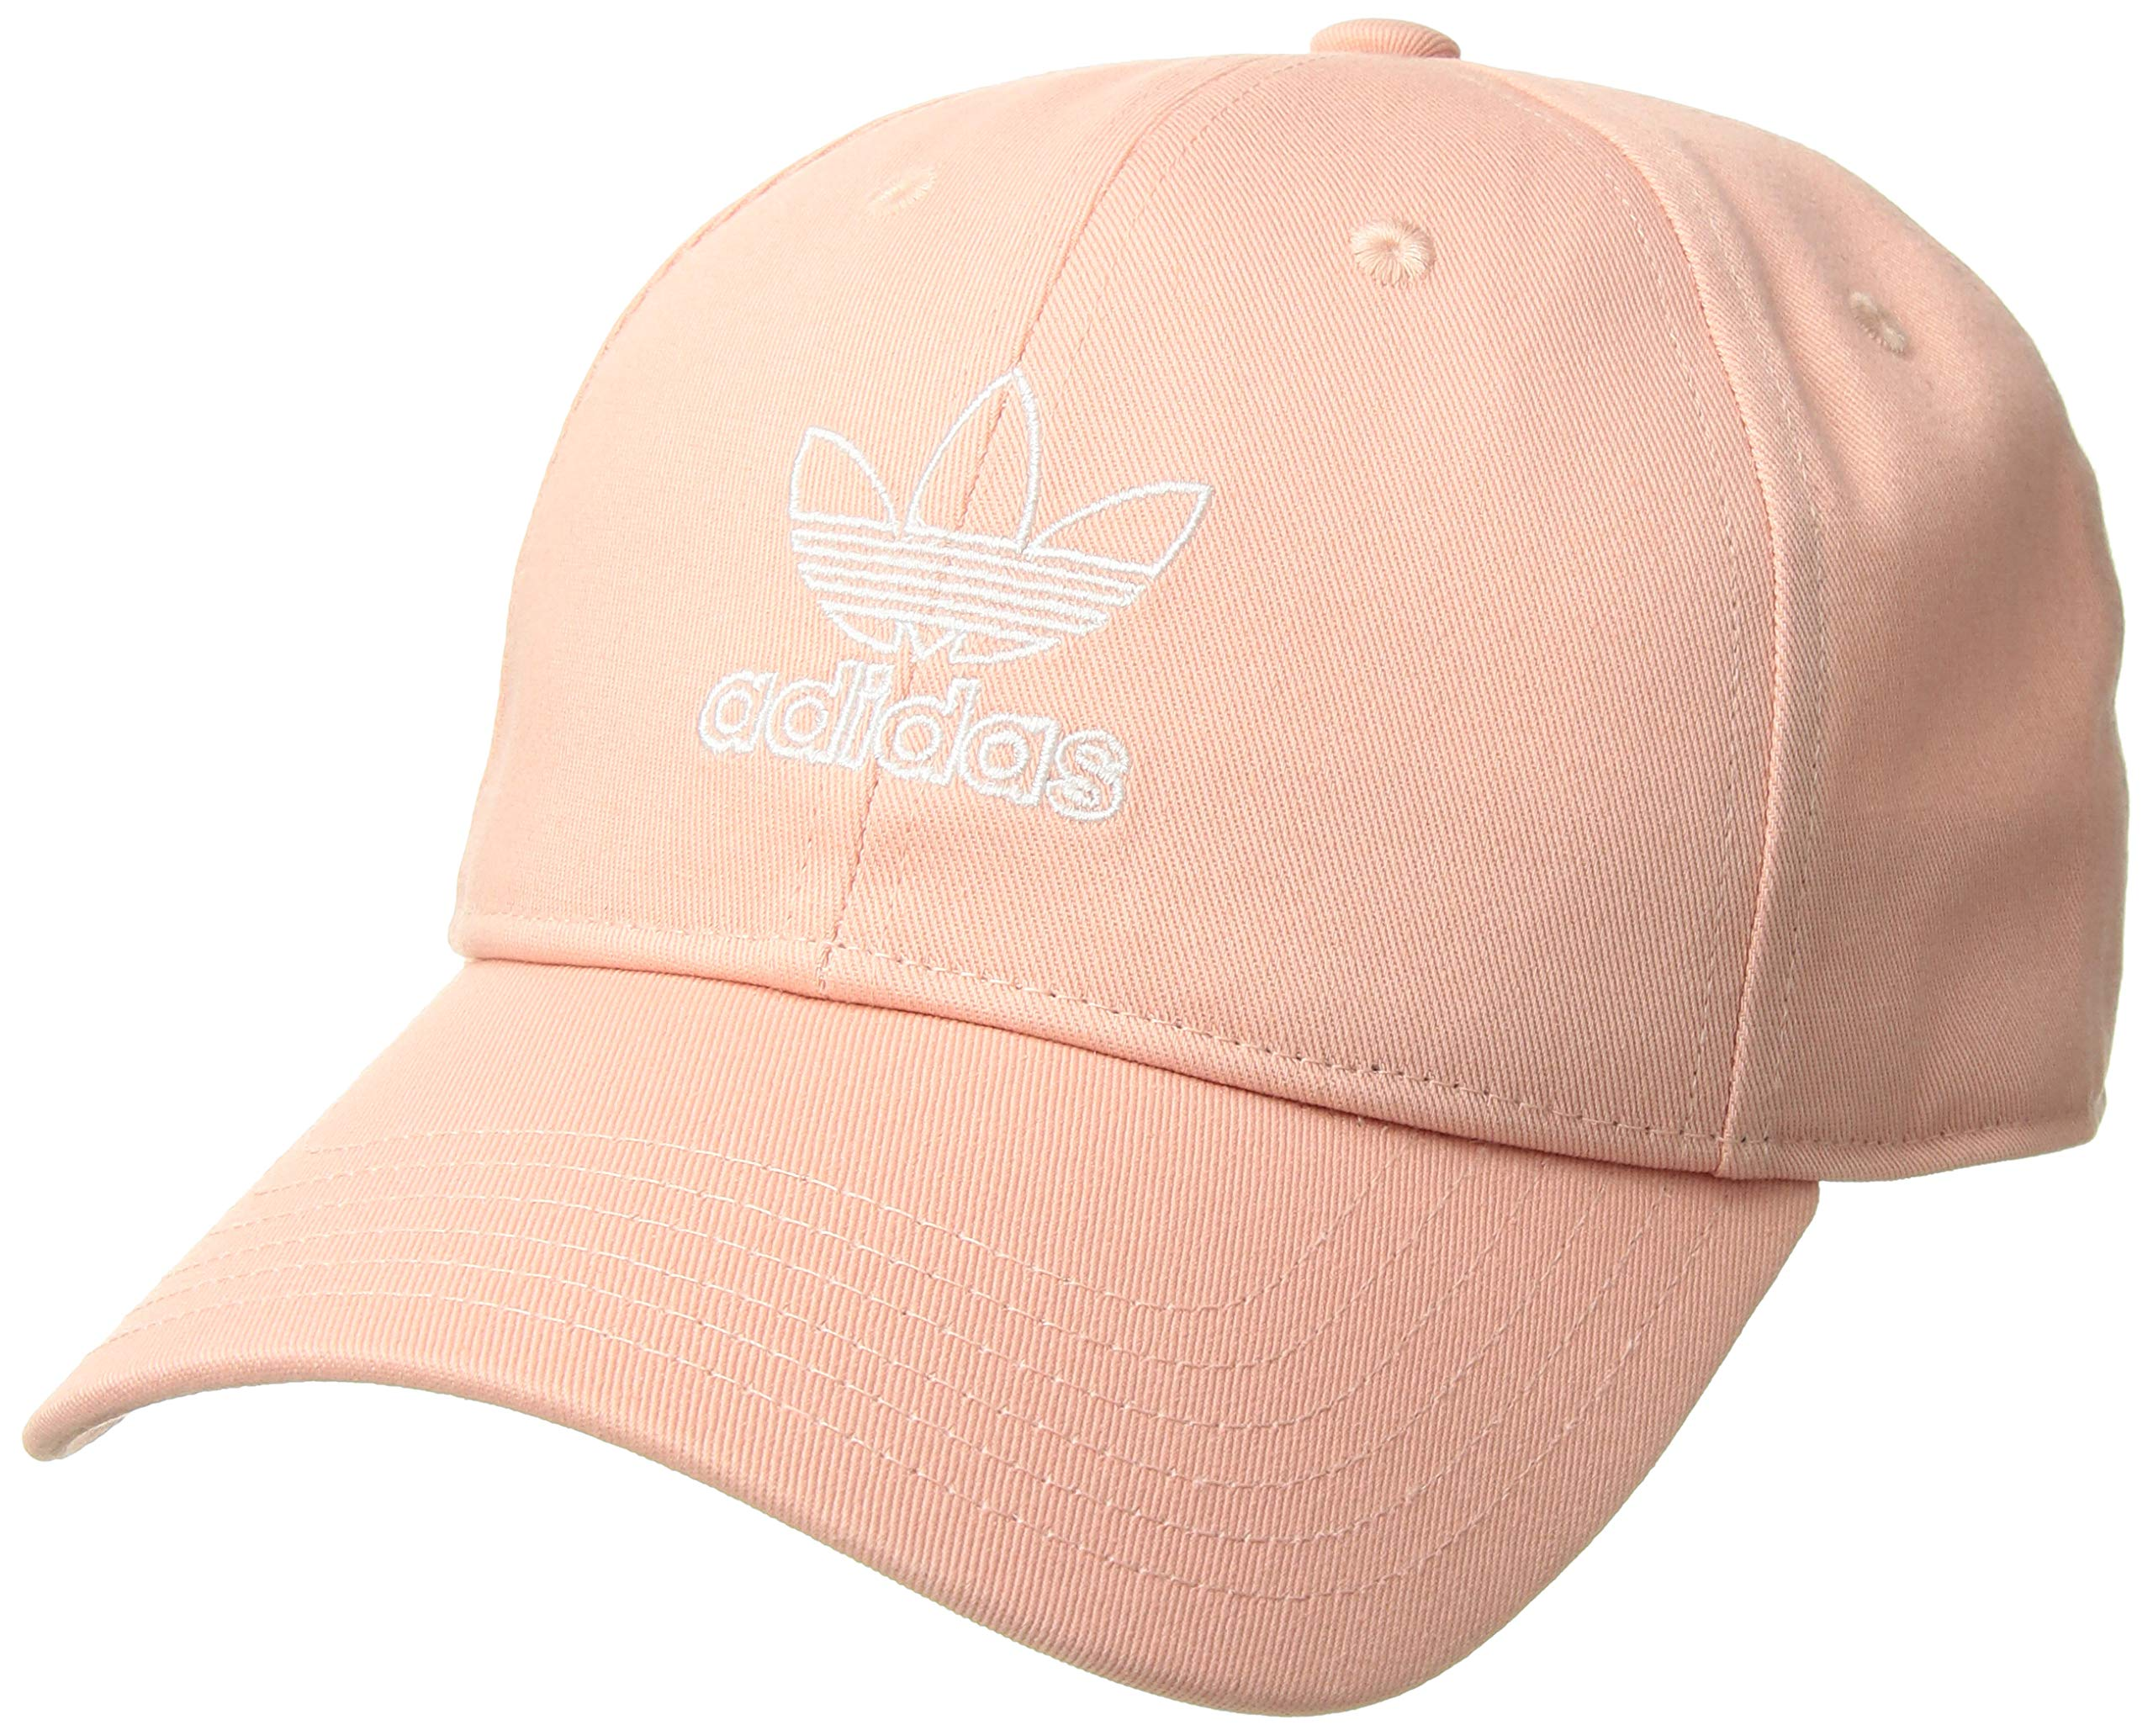 adidas Originals Women's Relaxed Outline Cap, Dust Pink/White, ONE SIZE by adidas